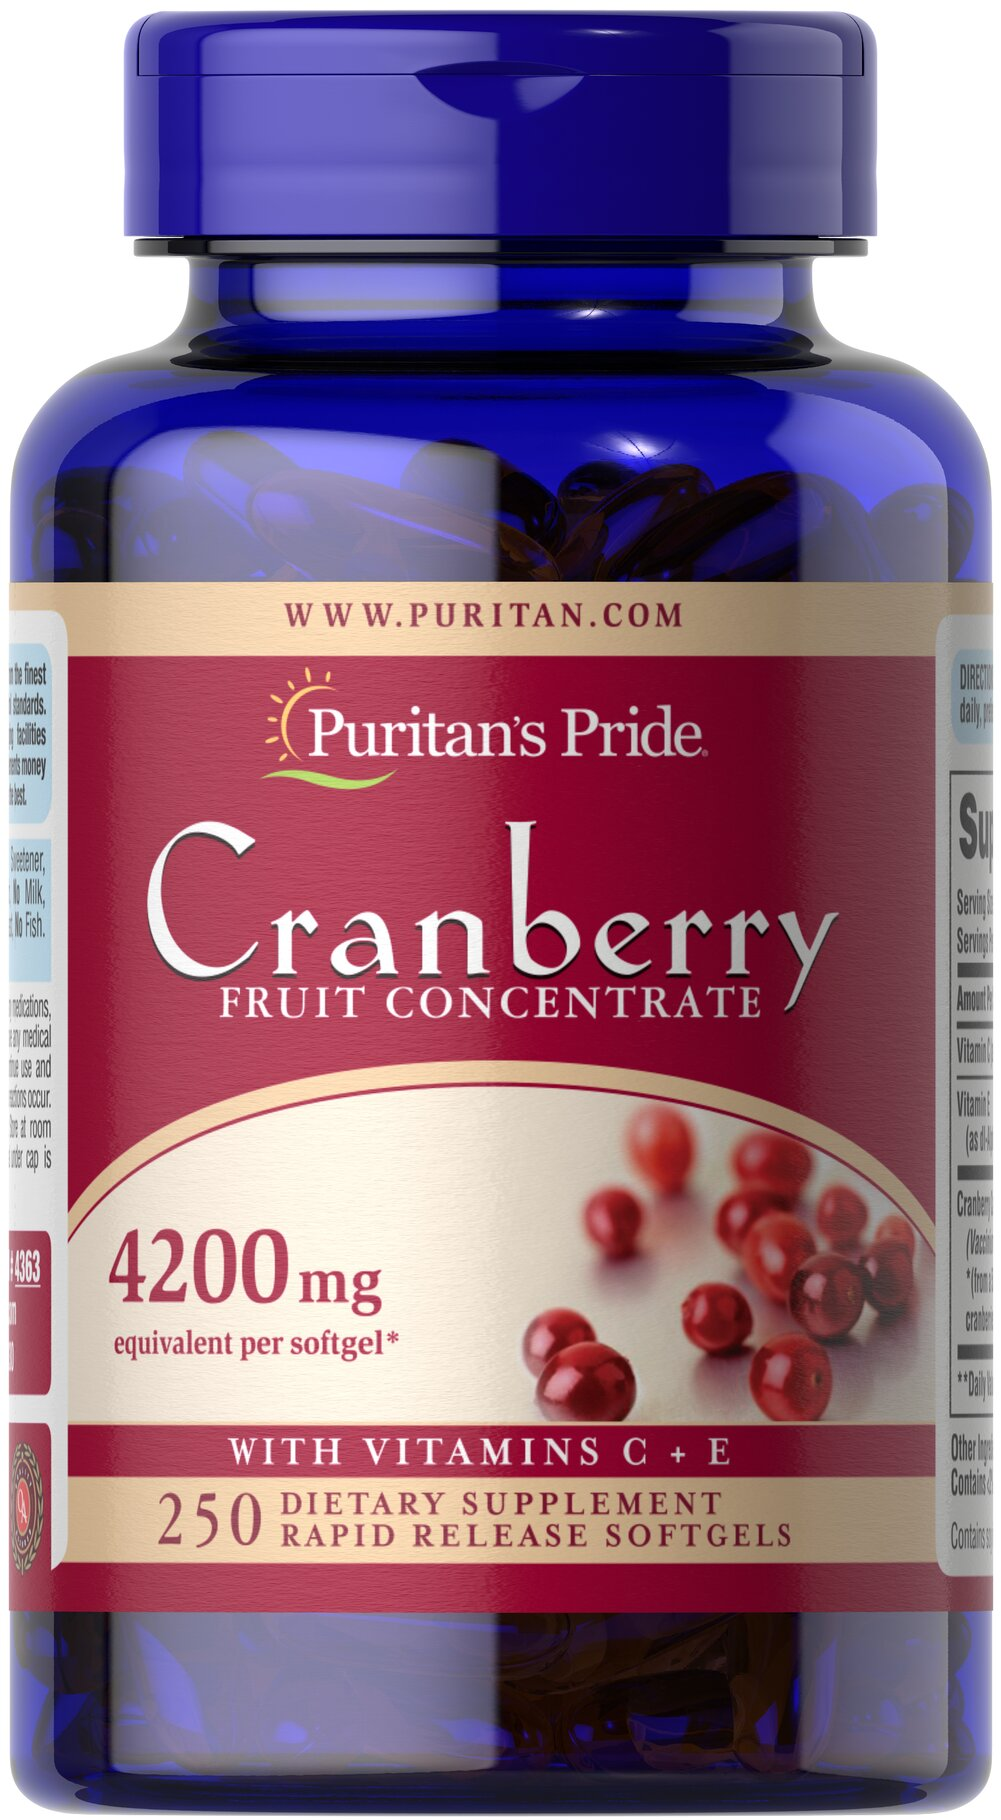 Cranberry Fruit Concentrate with C & E 4200 mg <p>This product has the benefits of concentrated cranberry without the unnecessary sugar and calories. Each of our concentrated (4200 mg) Cranberry softgels provide the equivalent of (8400 mg) of fresh cranberries plus (40 mg) of Vitamin C and 6 IU of Vitamin E.  Adults can take two softgels 3 times daily, after meals.</p> 250 Softgels 4200 mg $27.99